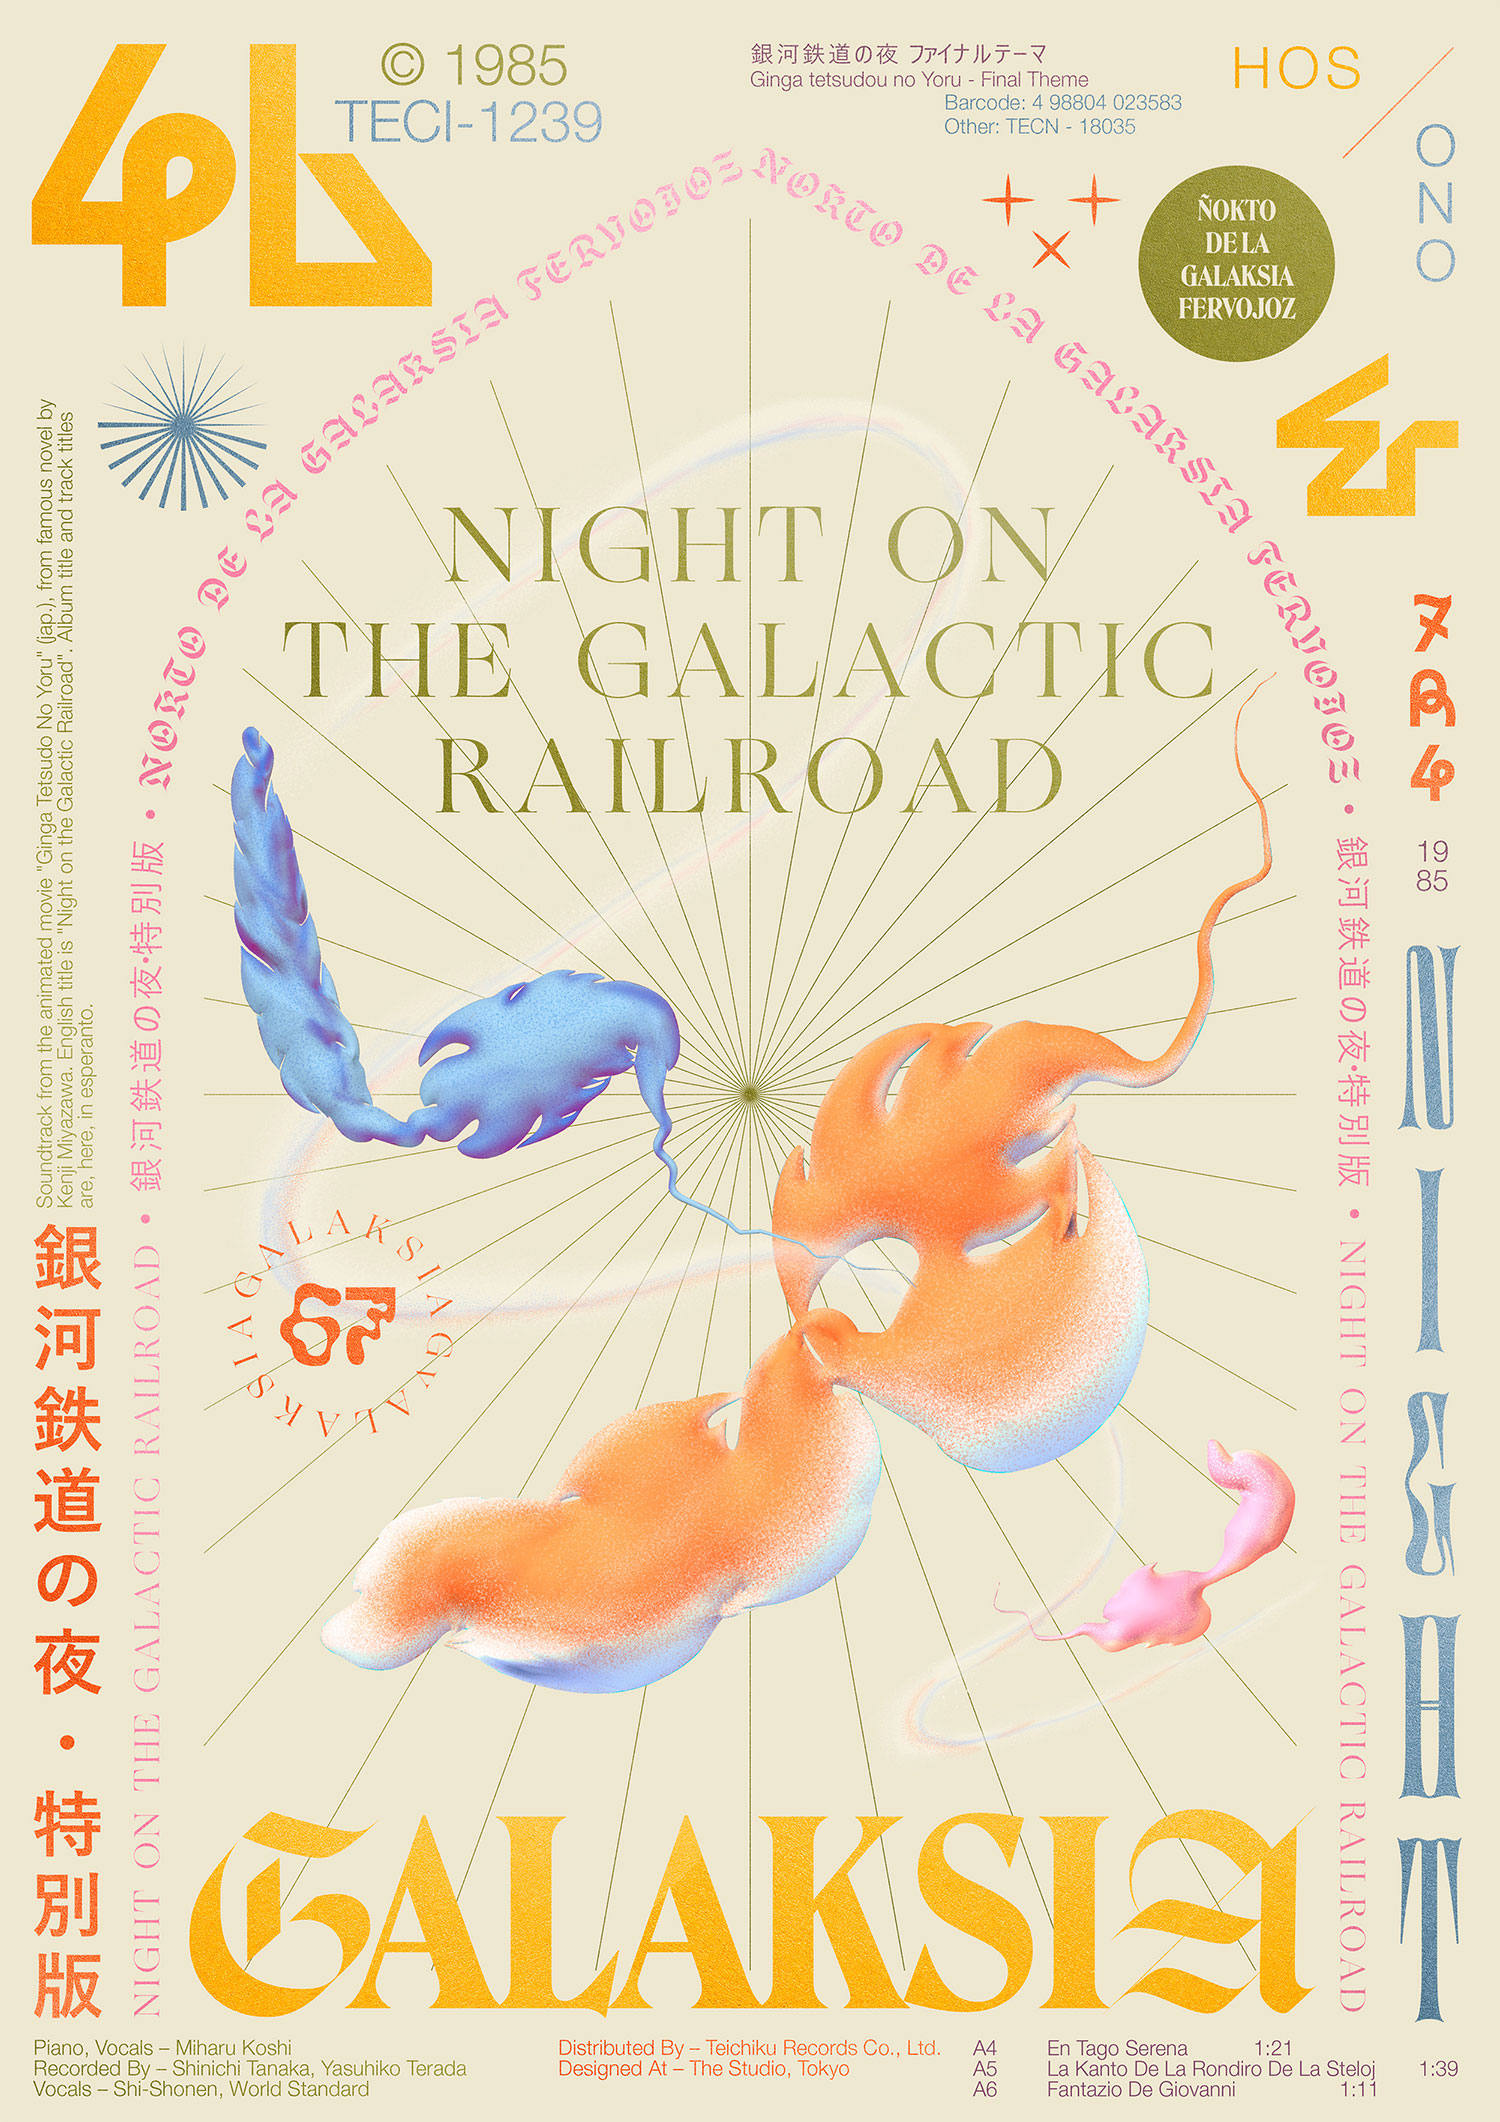 Night on the Galactic Railroad soundtrack